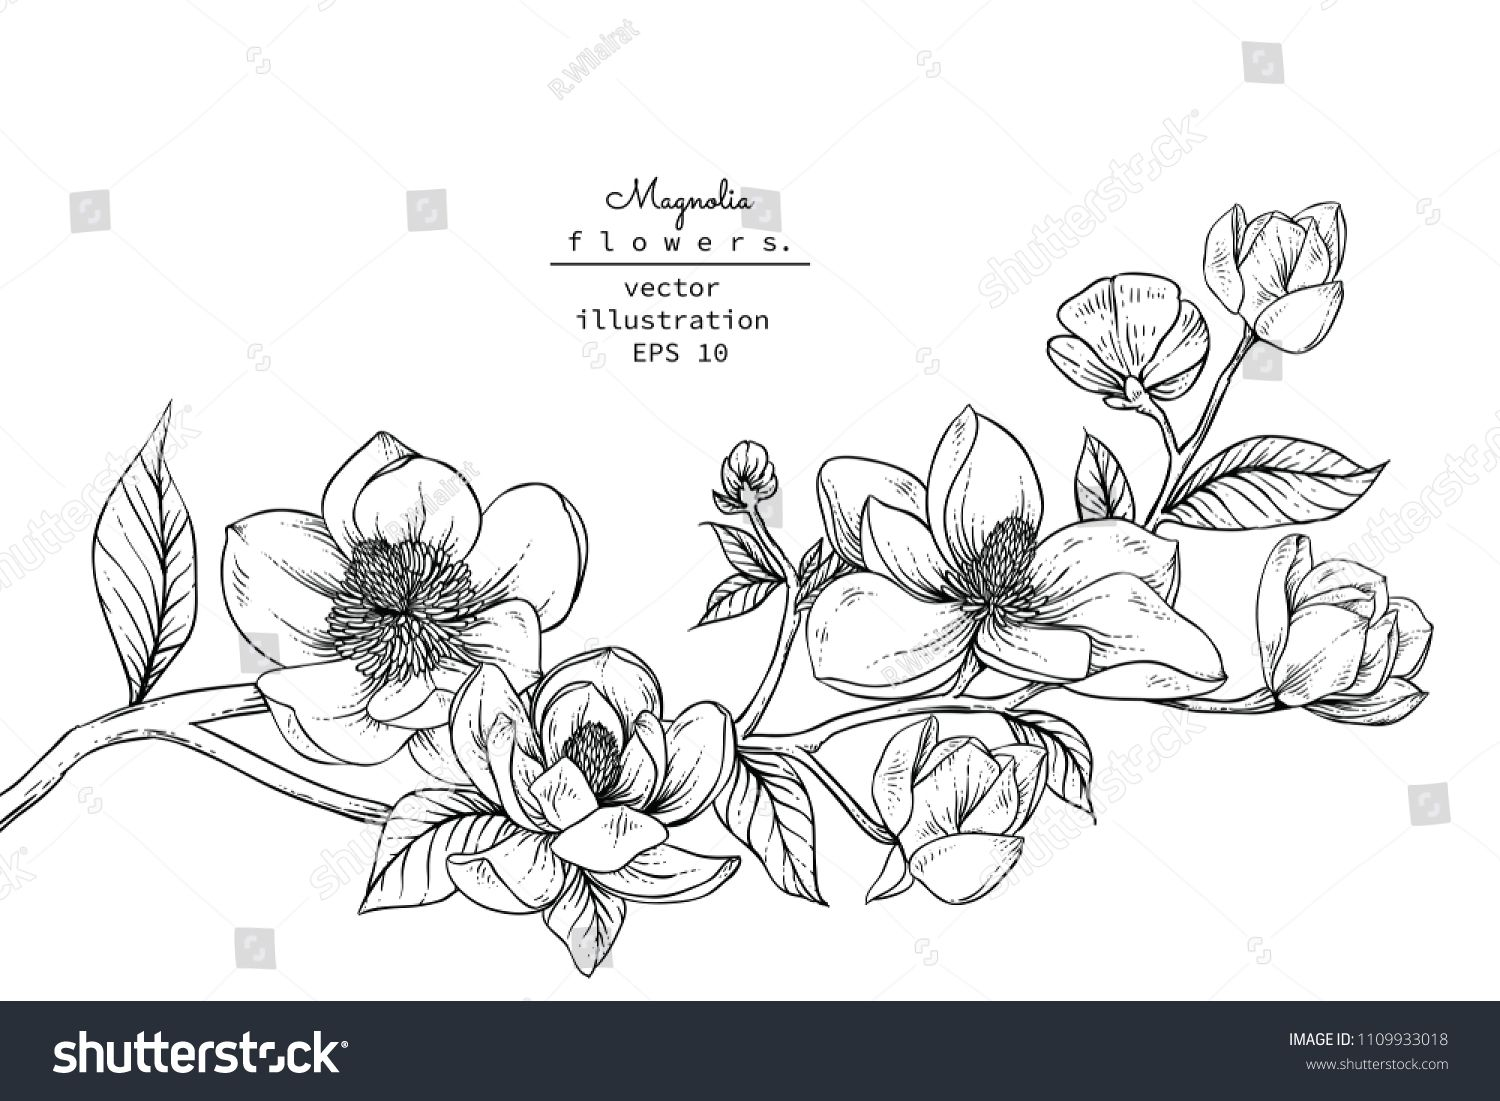 Sketch Floral Botany Collection Magnolia Flower Drawings Black And White With Line Art On White Backgrounds Han Flower Drawing Floral Botany Magnolia Flower